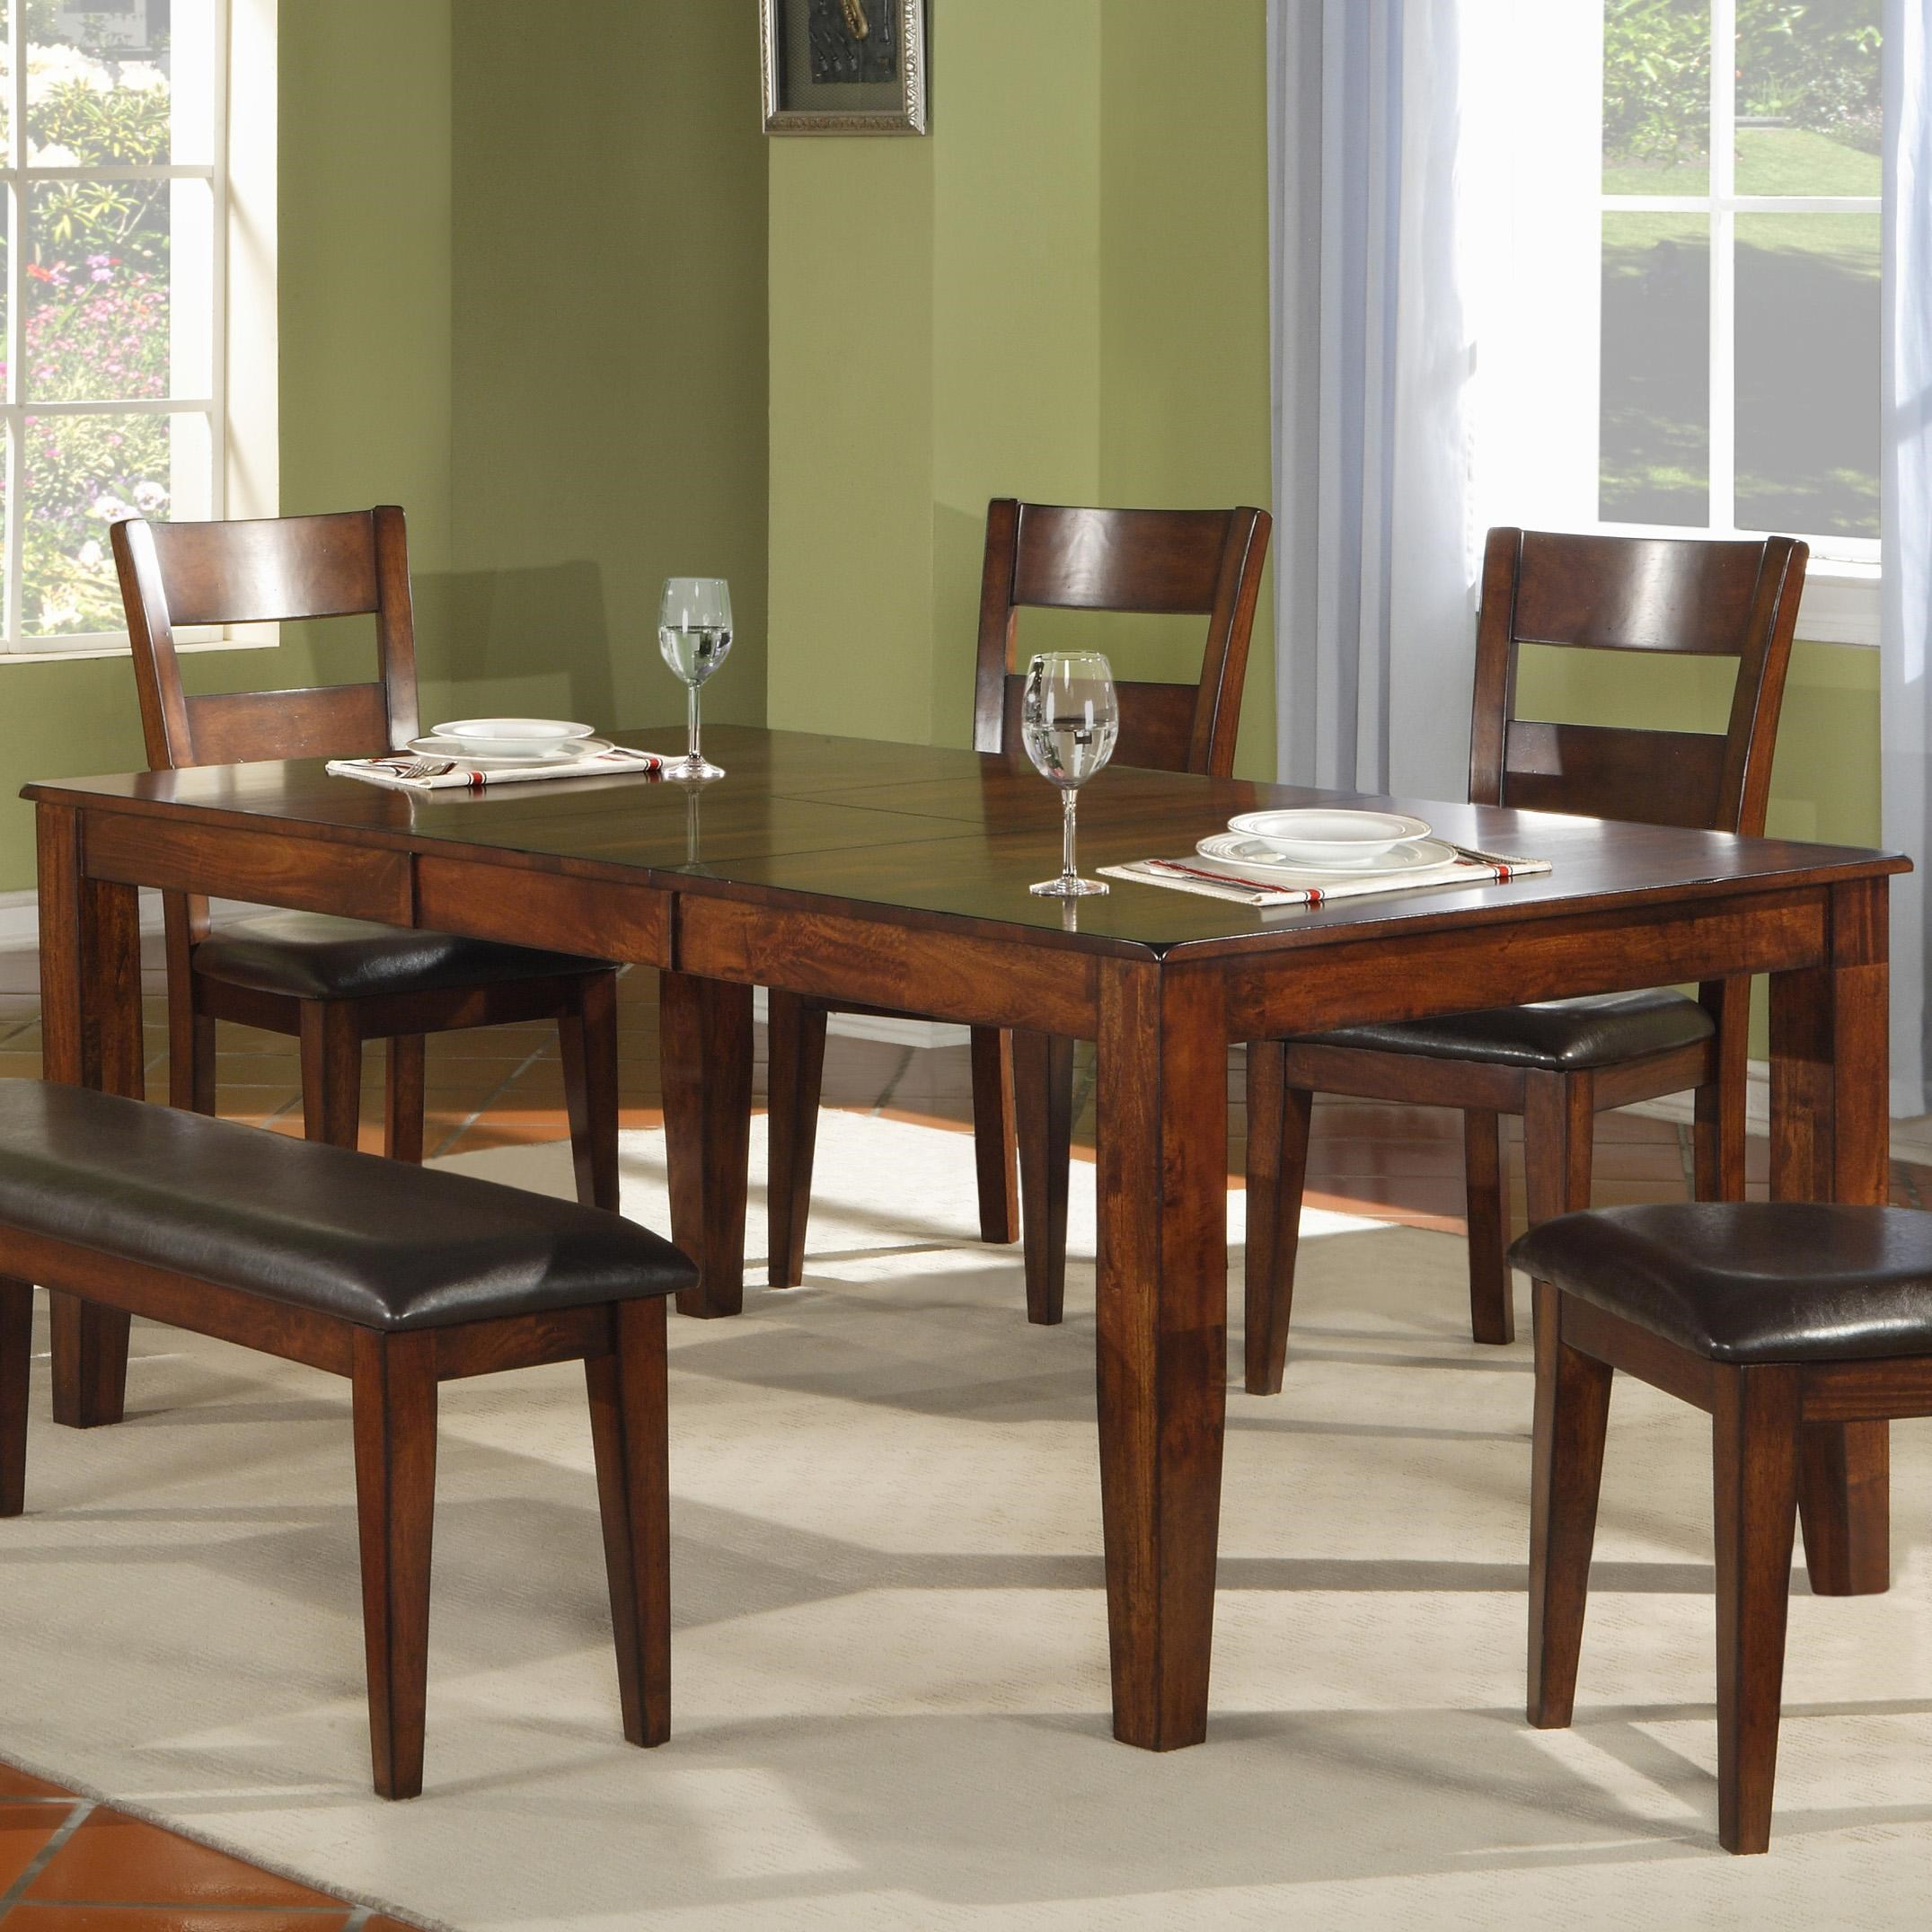 Beau Holland House 1279 Modern Solid Mango Wood Dining Table